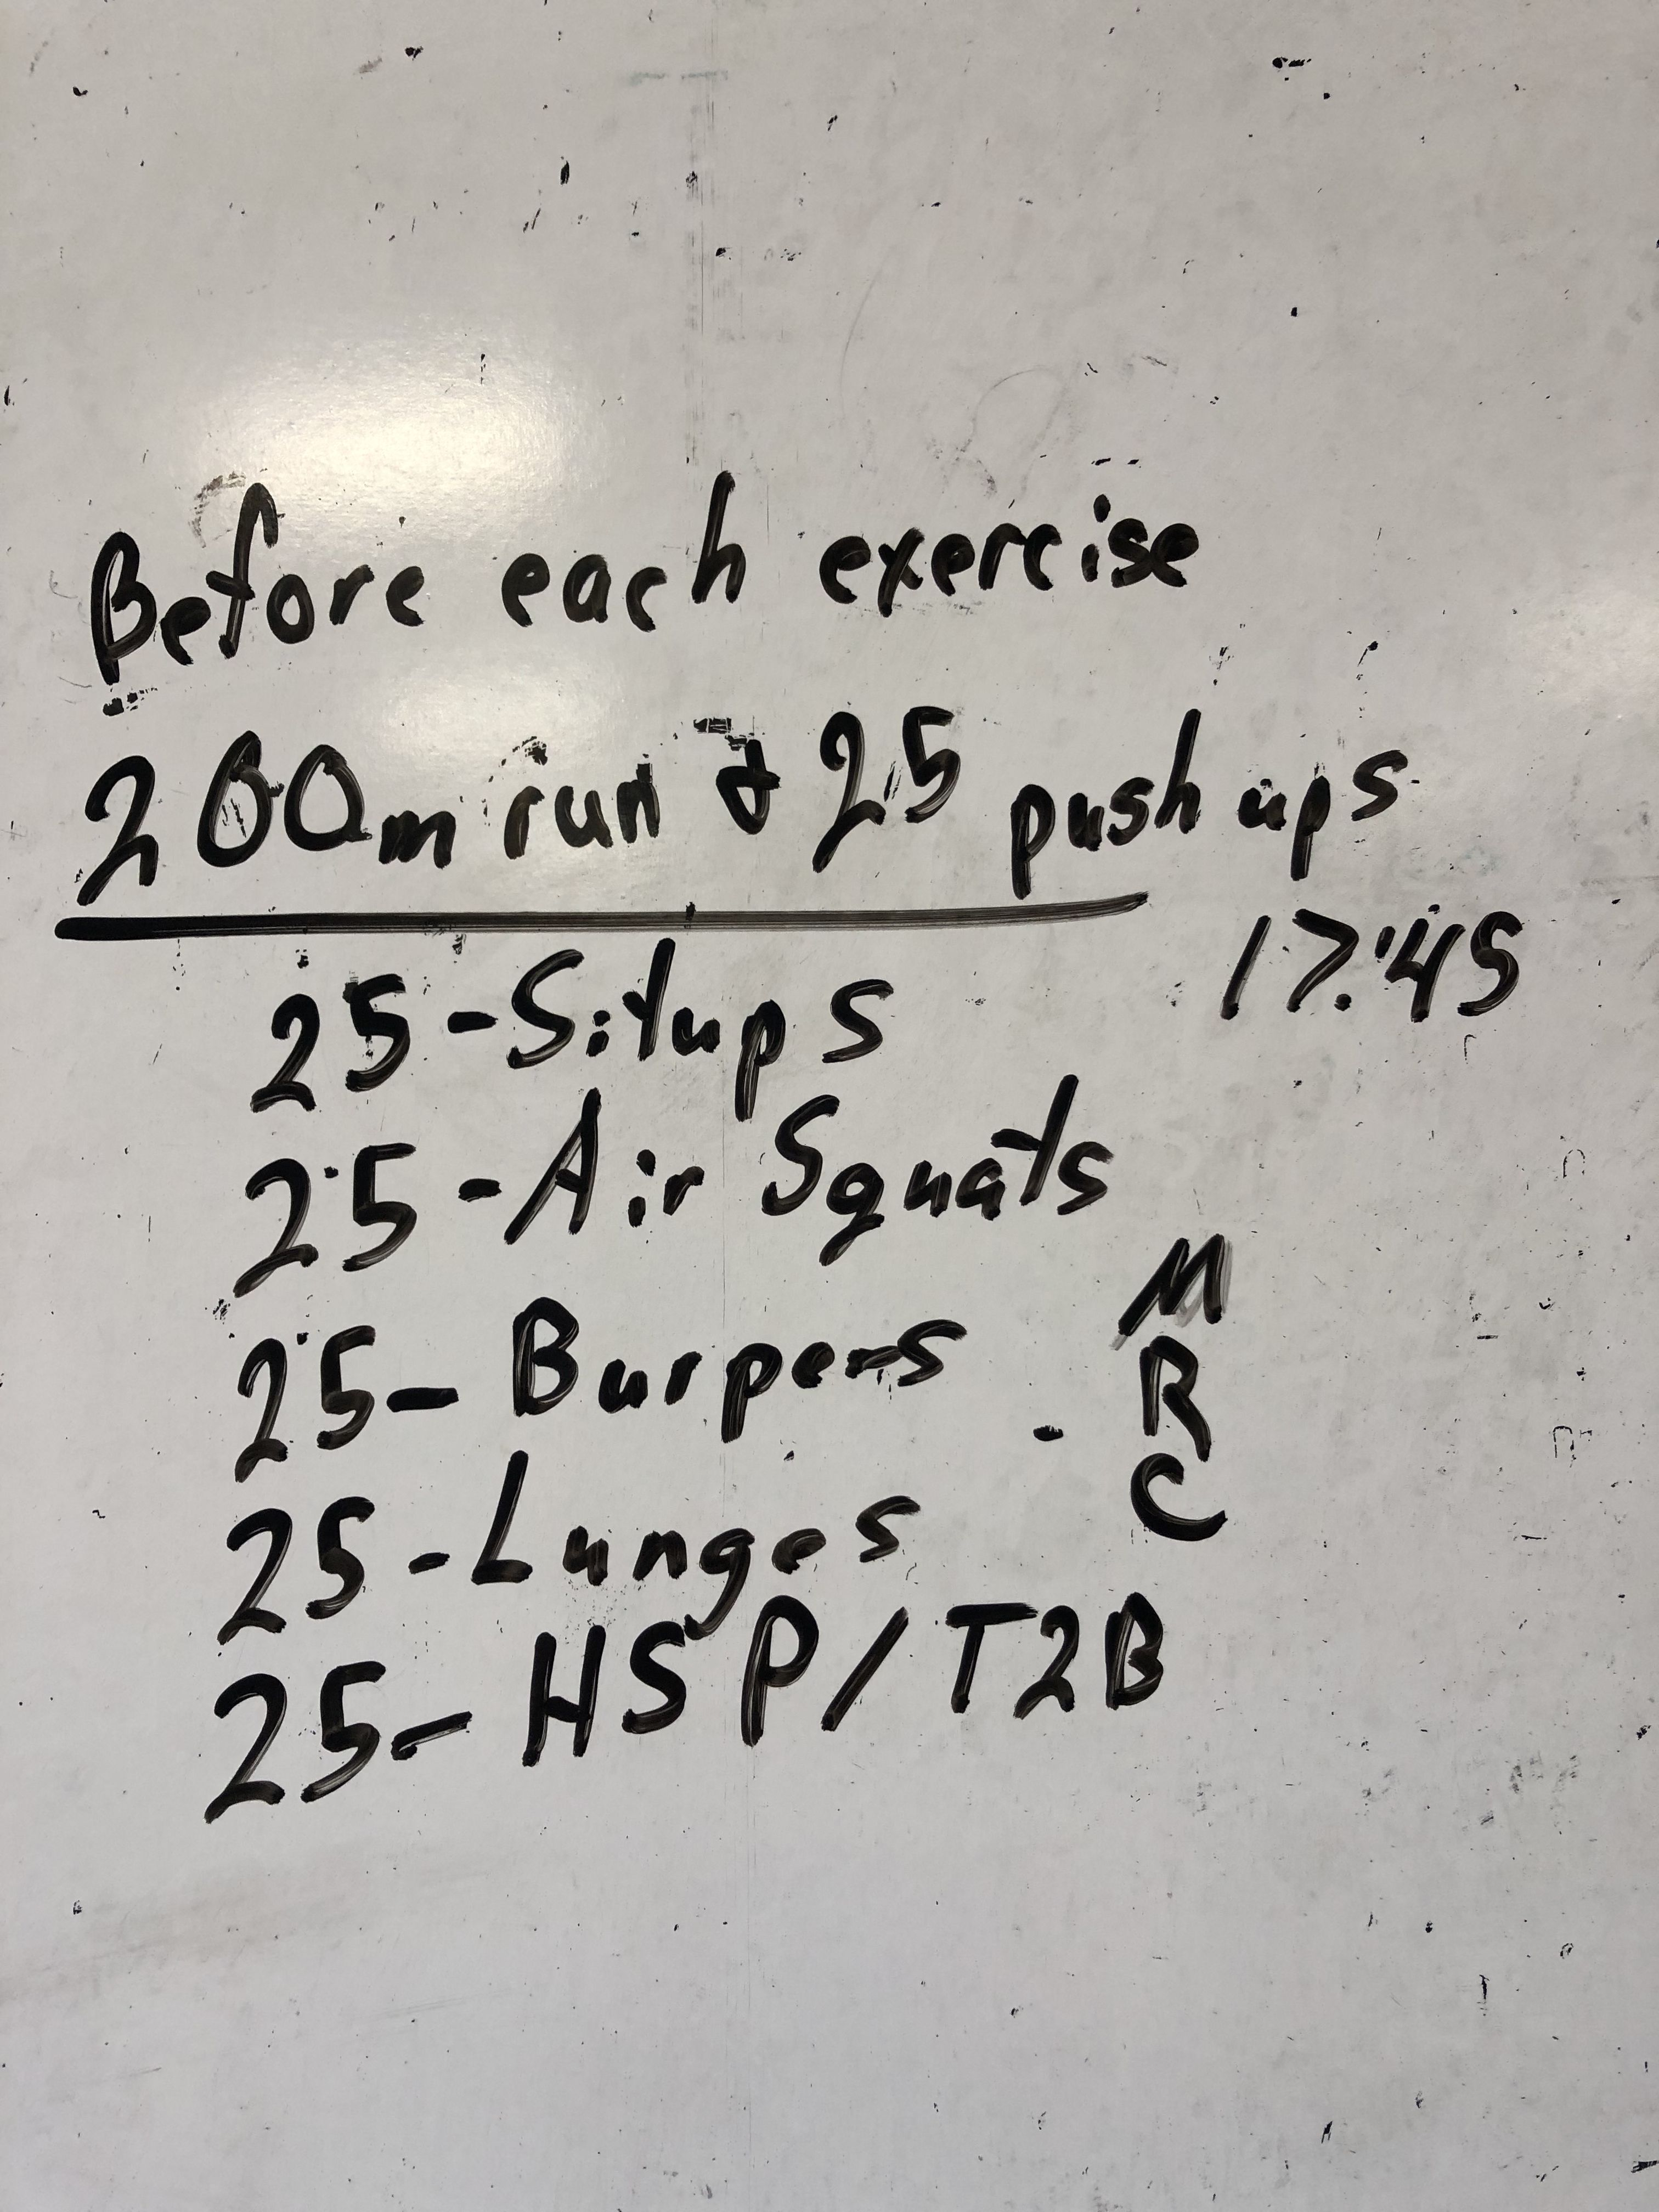 Body weight movement day 1000 meter run and 125 pushups total broke up before each different exercise